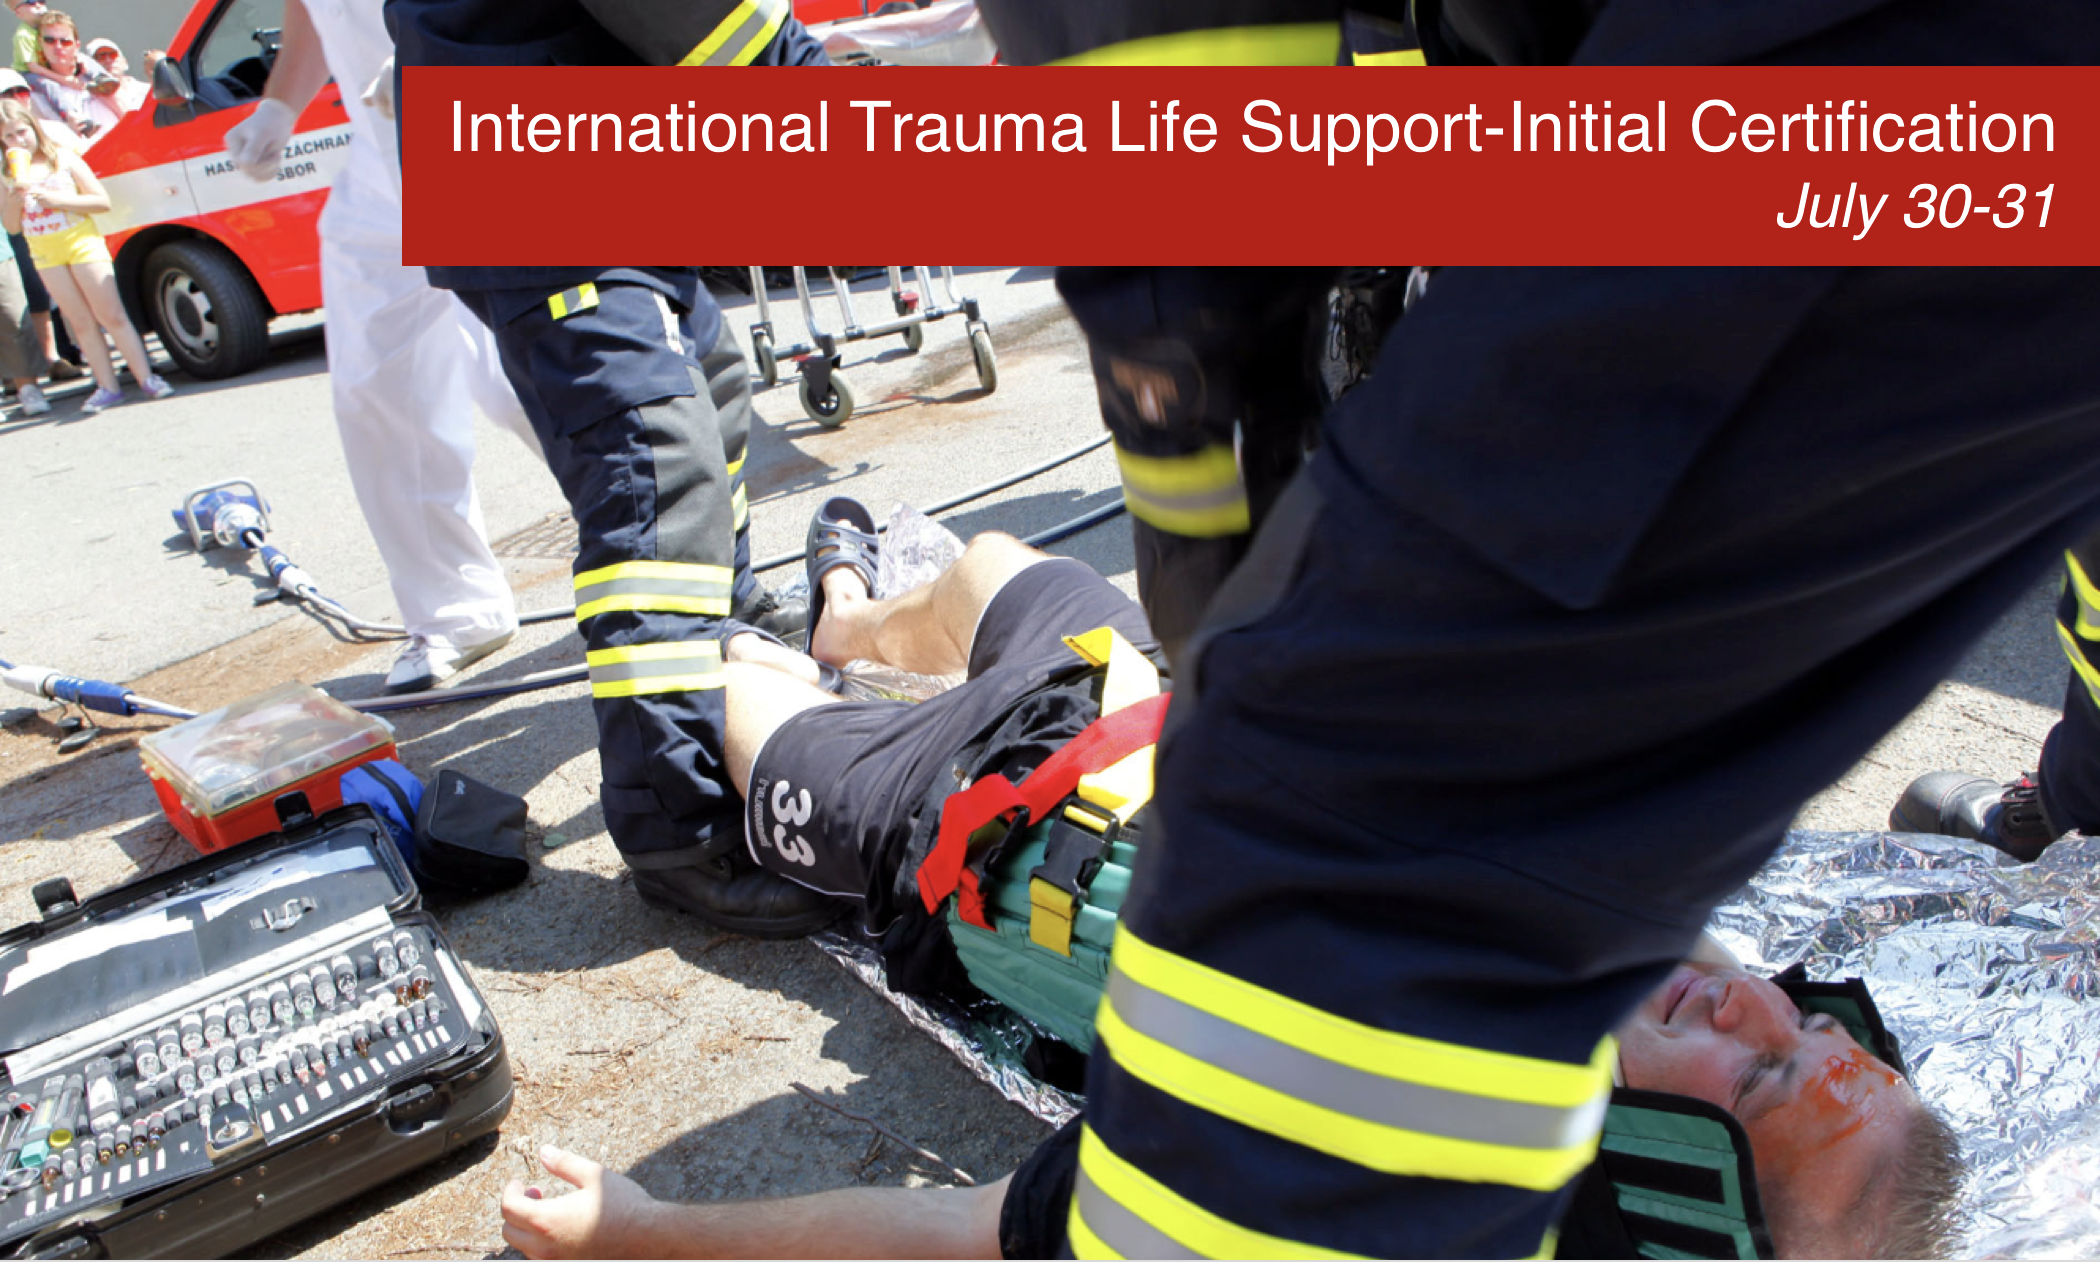 Step Up Your Ems Skills With International Trauma Life Support